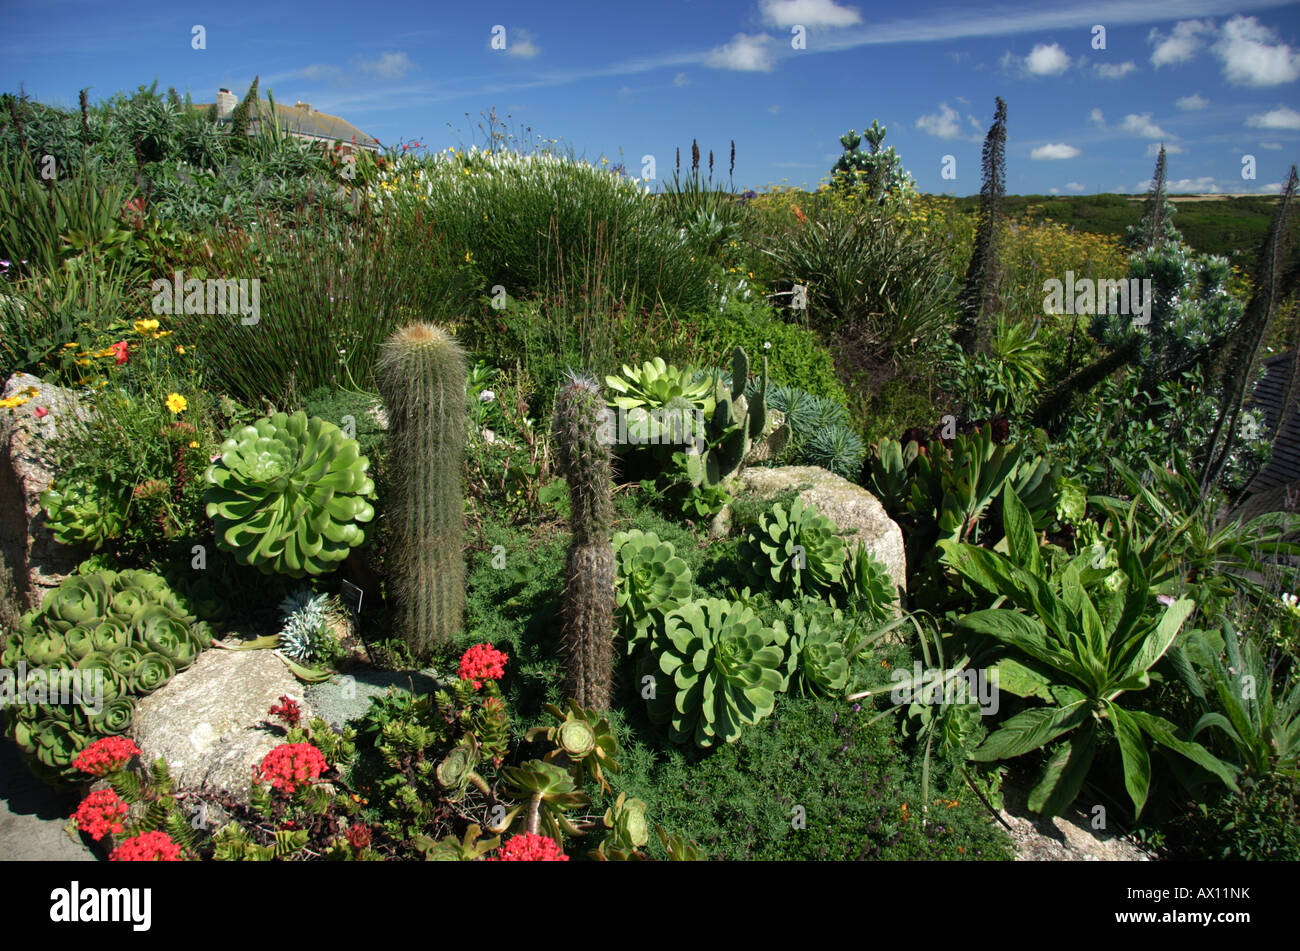 Uk Tropical Plants Part - 27: Stock Photo - Sub Tropical Plants In The Gardens Of The Famous Out Door  Minack Theatre, South, Cornwall, UK